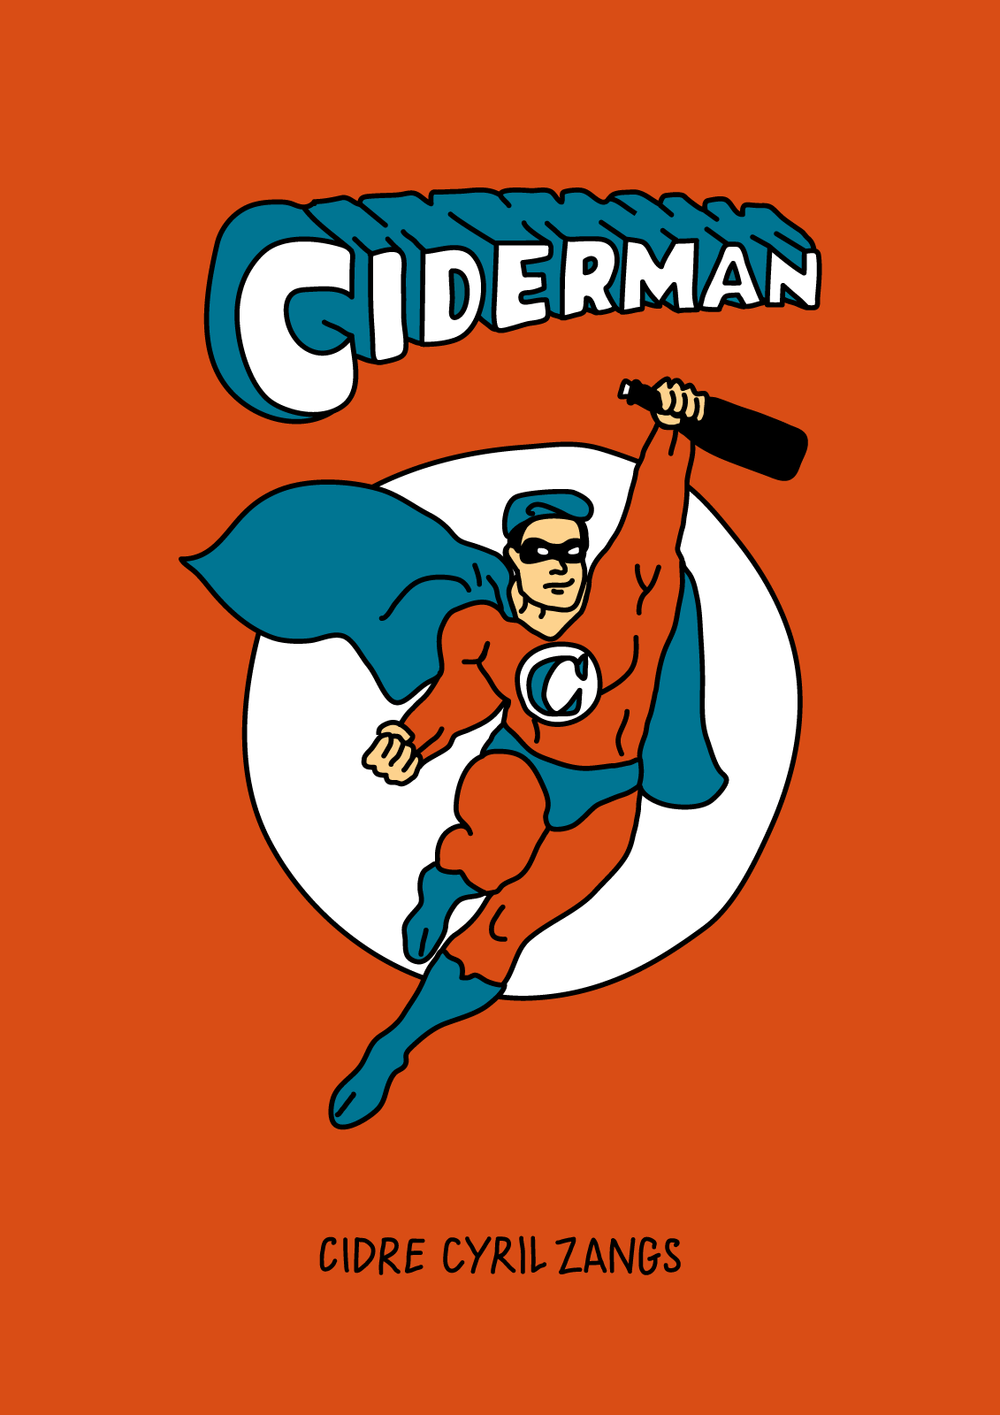 Ciderman